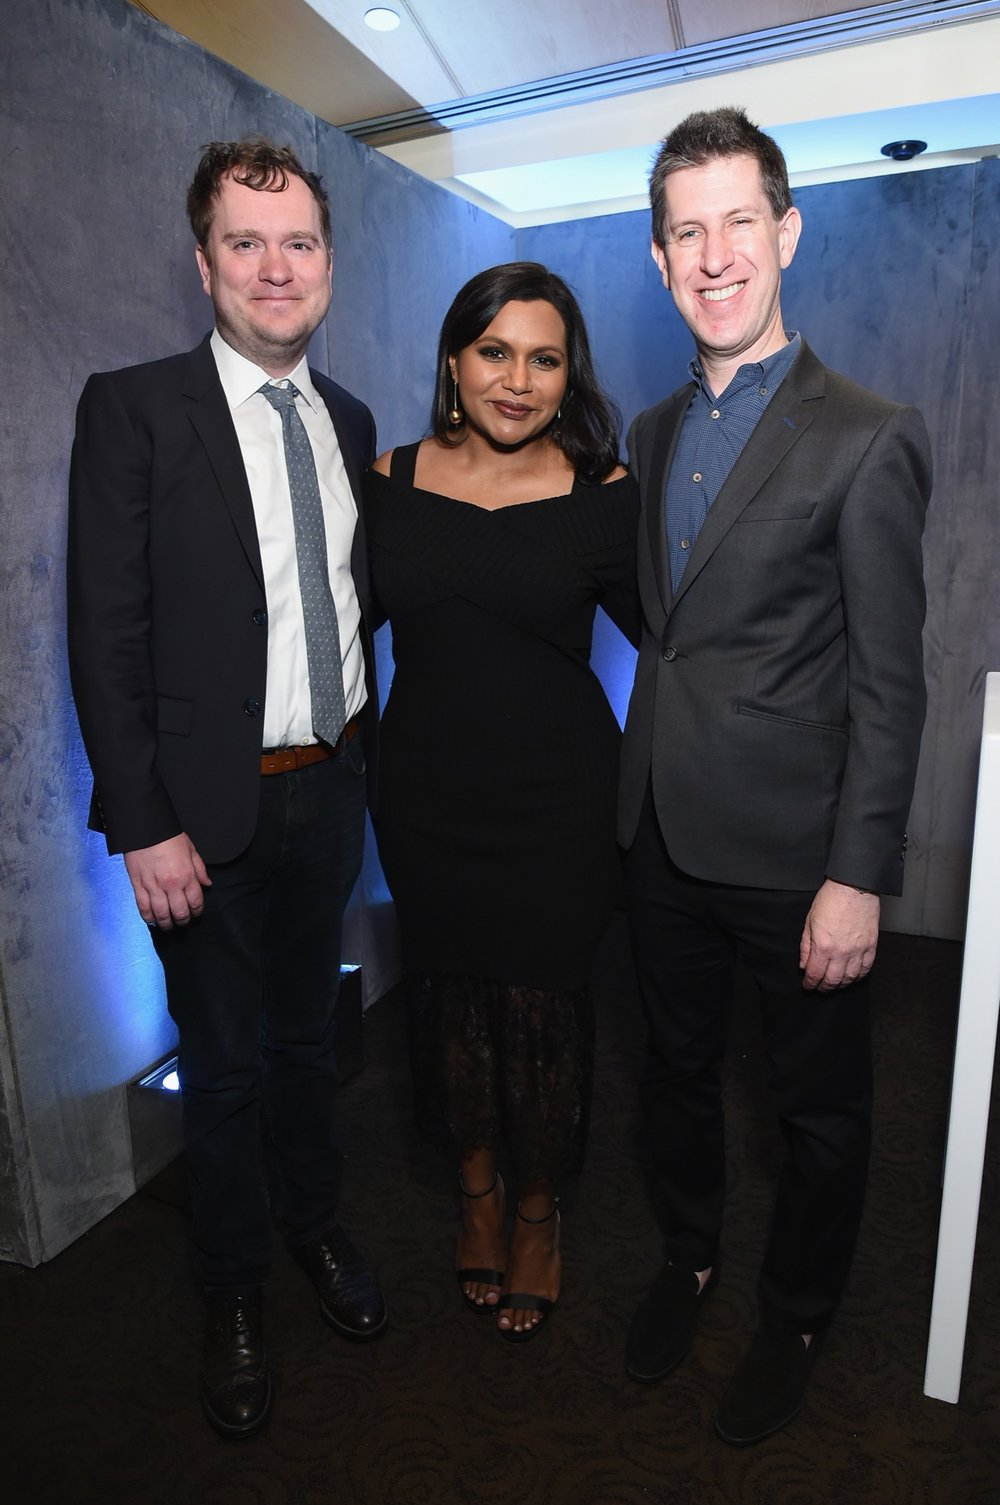 NEW YORK, NY - MAY 02: (L-R) Executive producere Matt Warburton, Mindy Kaling and Hulu Head of Content Craig Erwich pose for a photo in the Hulu Upfront 2018 Green Room at The Hulu Theater at Madison Square Garden on May 2, 2018 in New York City.  (Photo by Mike Coppola/Getty Images for Hulu) *** Local Caption *** Matt Warburton;Mindy Kaling;Craig Erwich